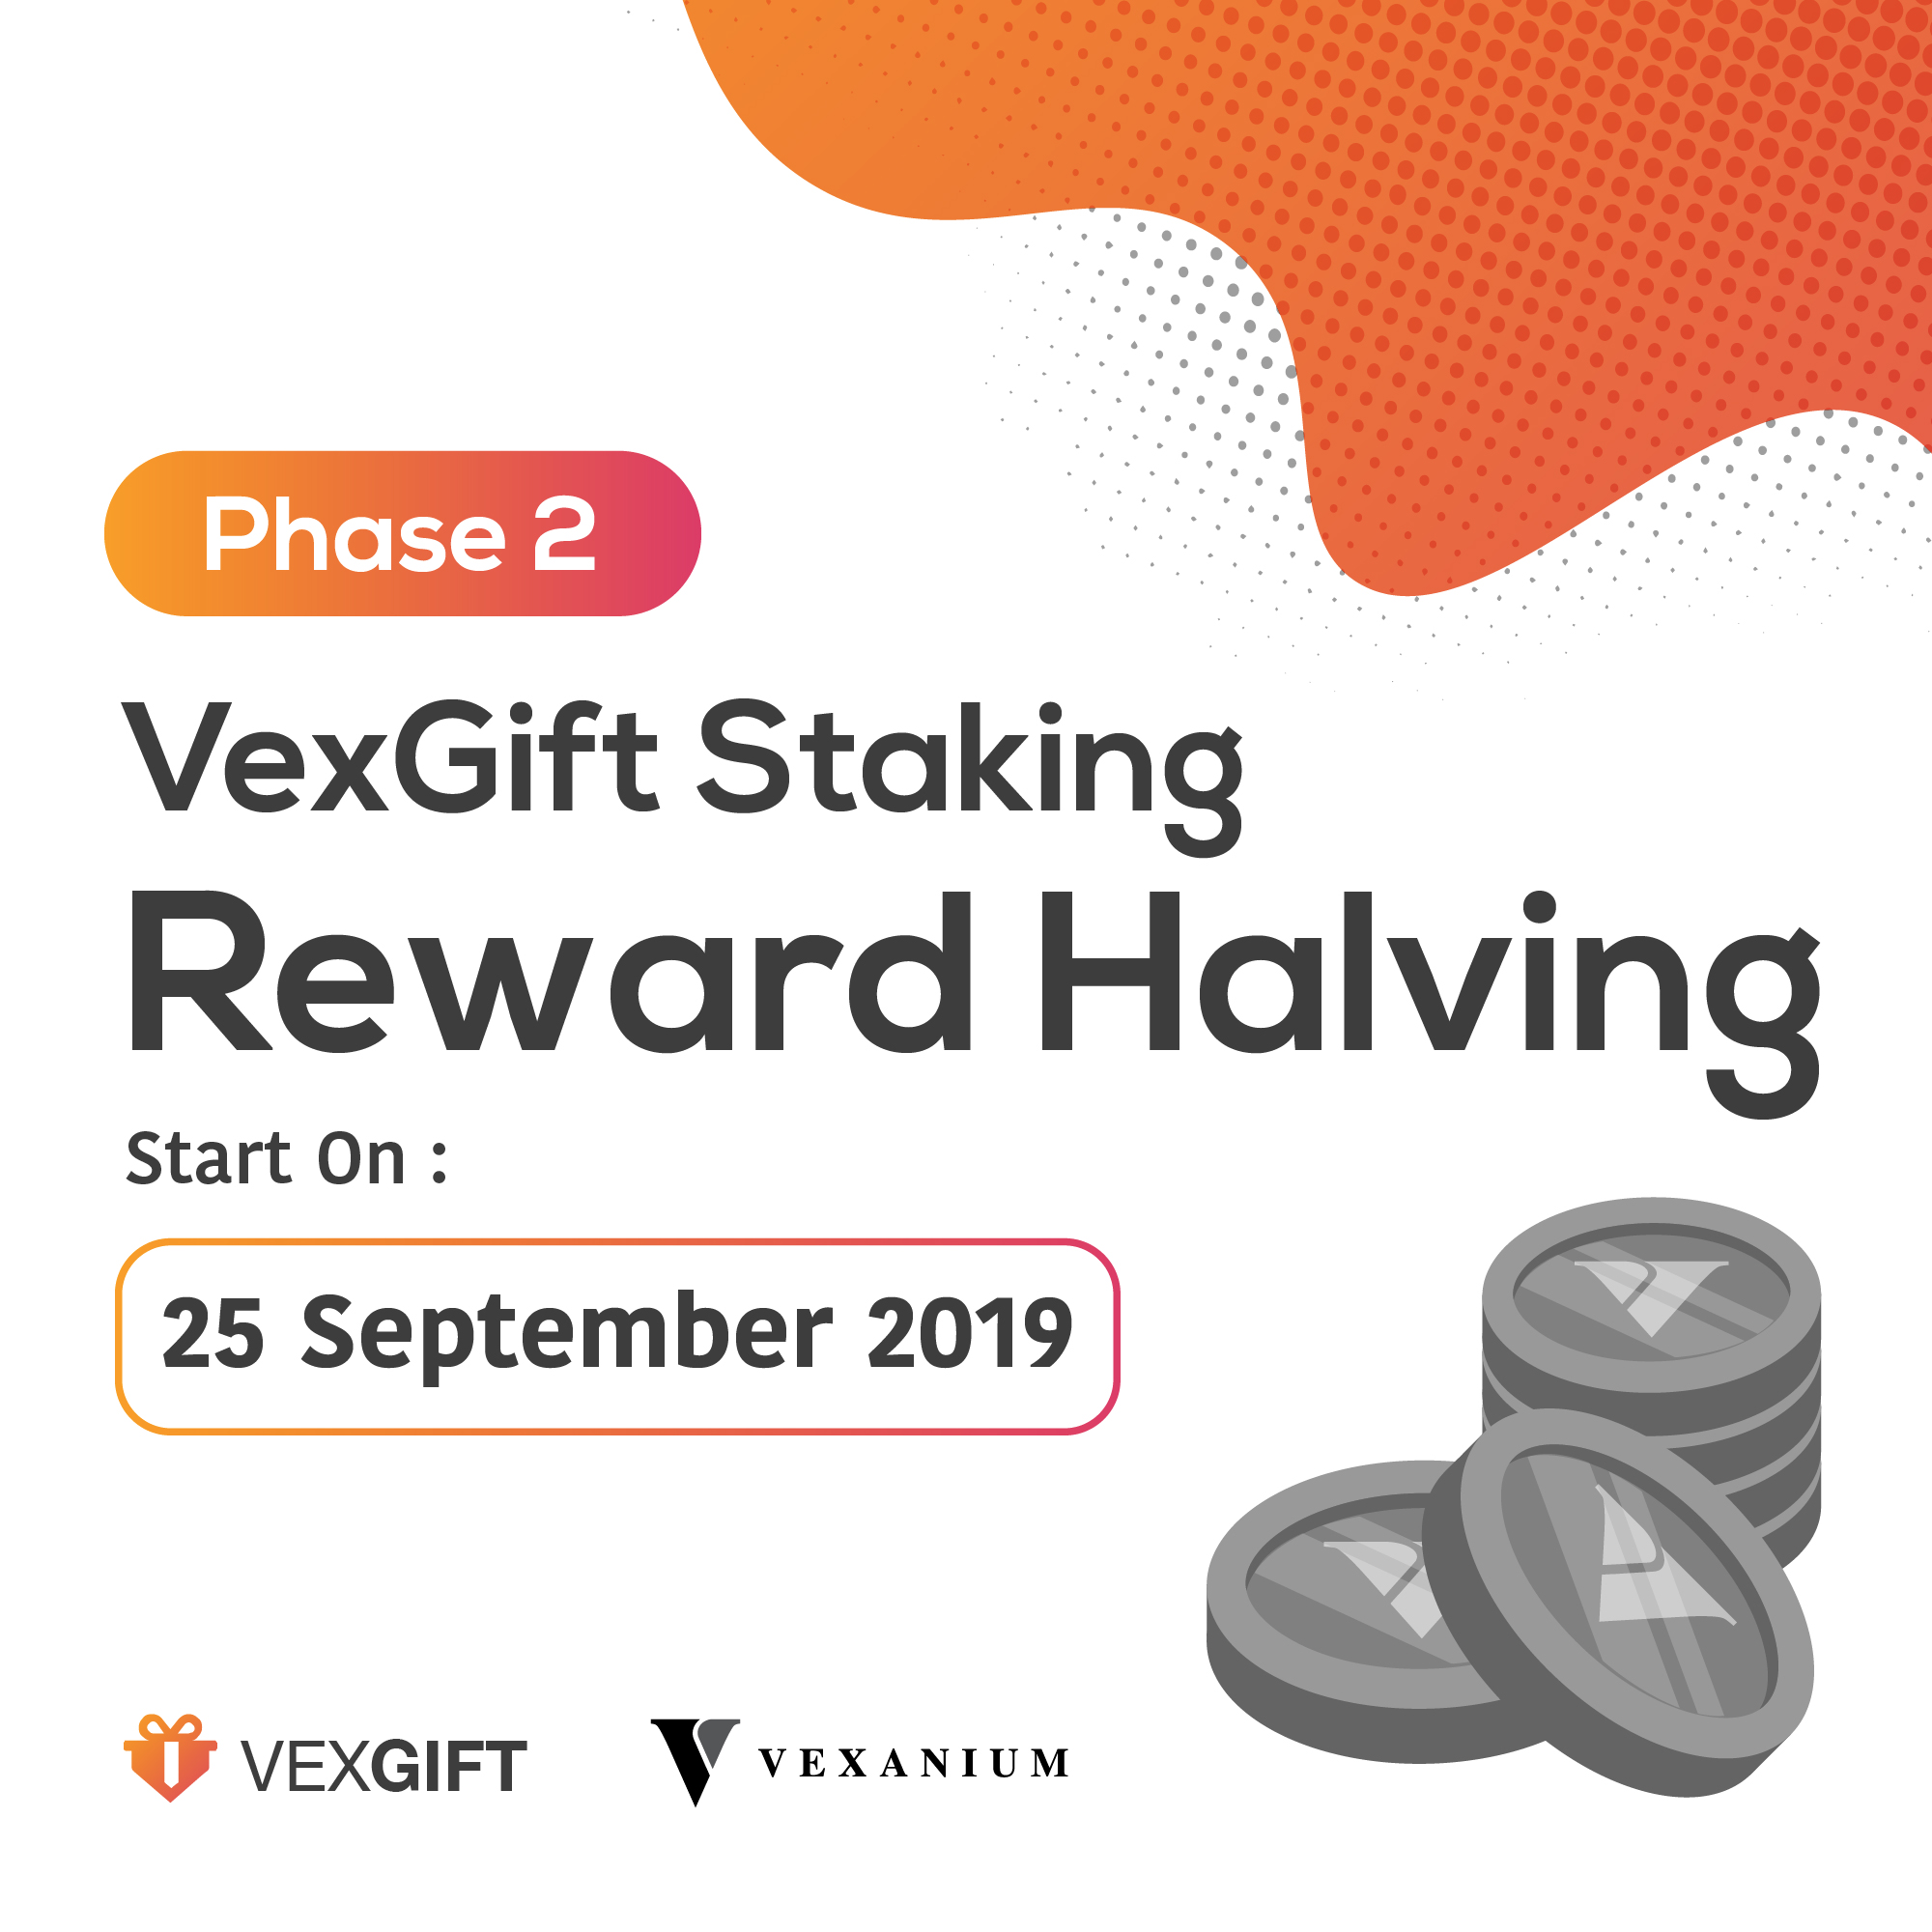 VexGift Staking Reward Halving Phase 2 Announcement